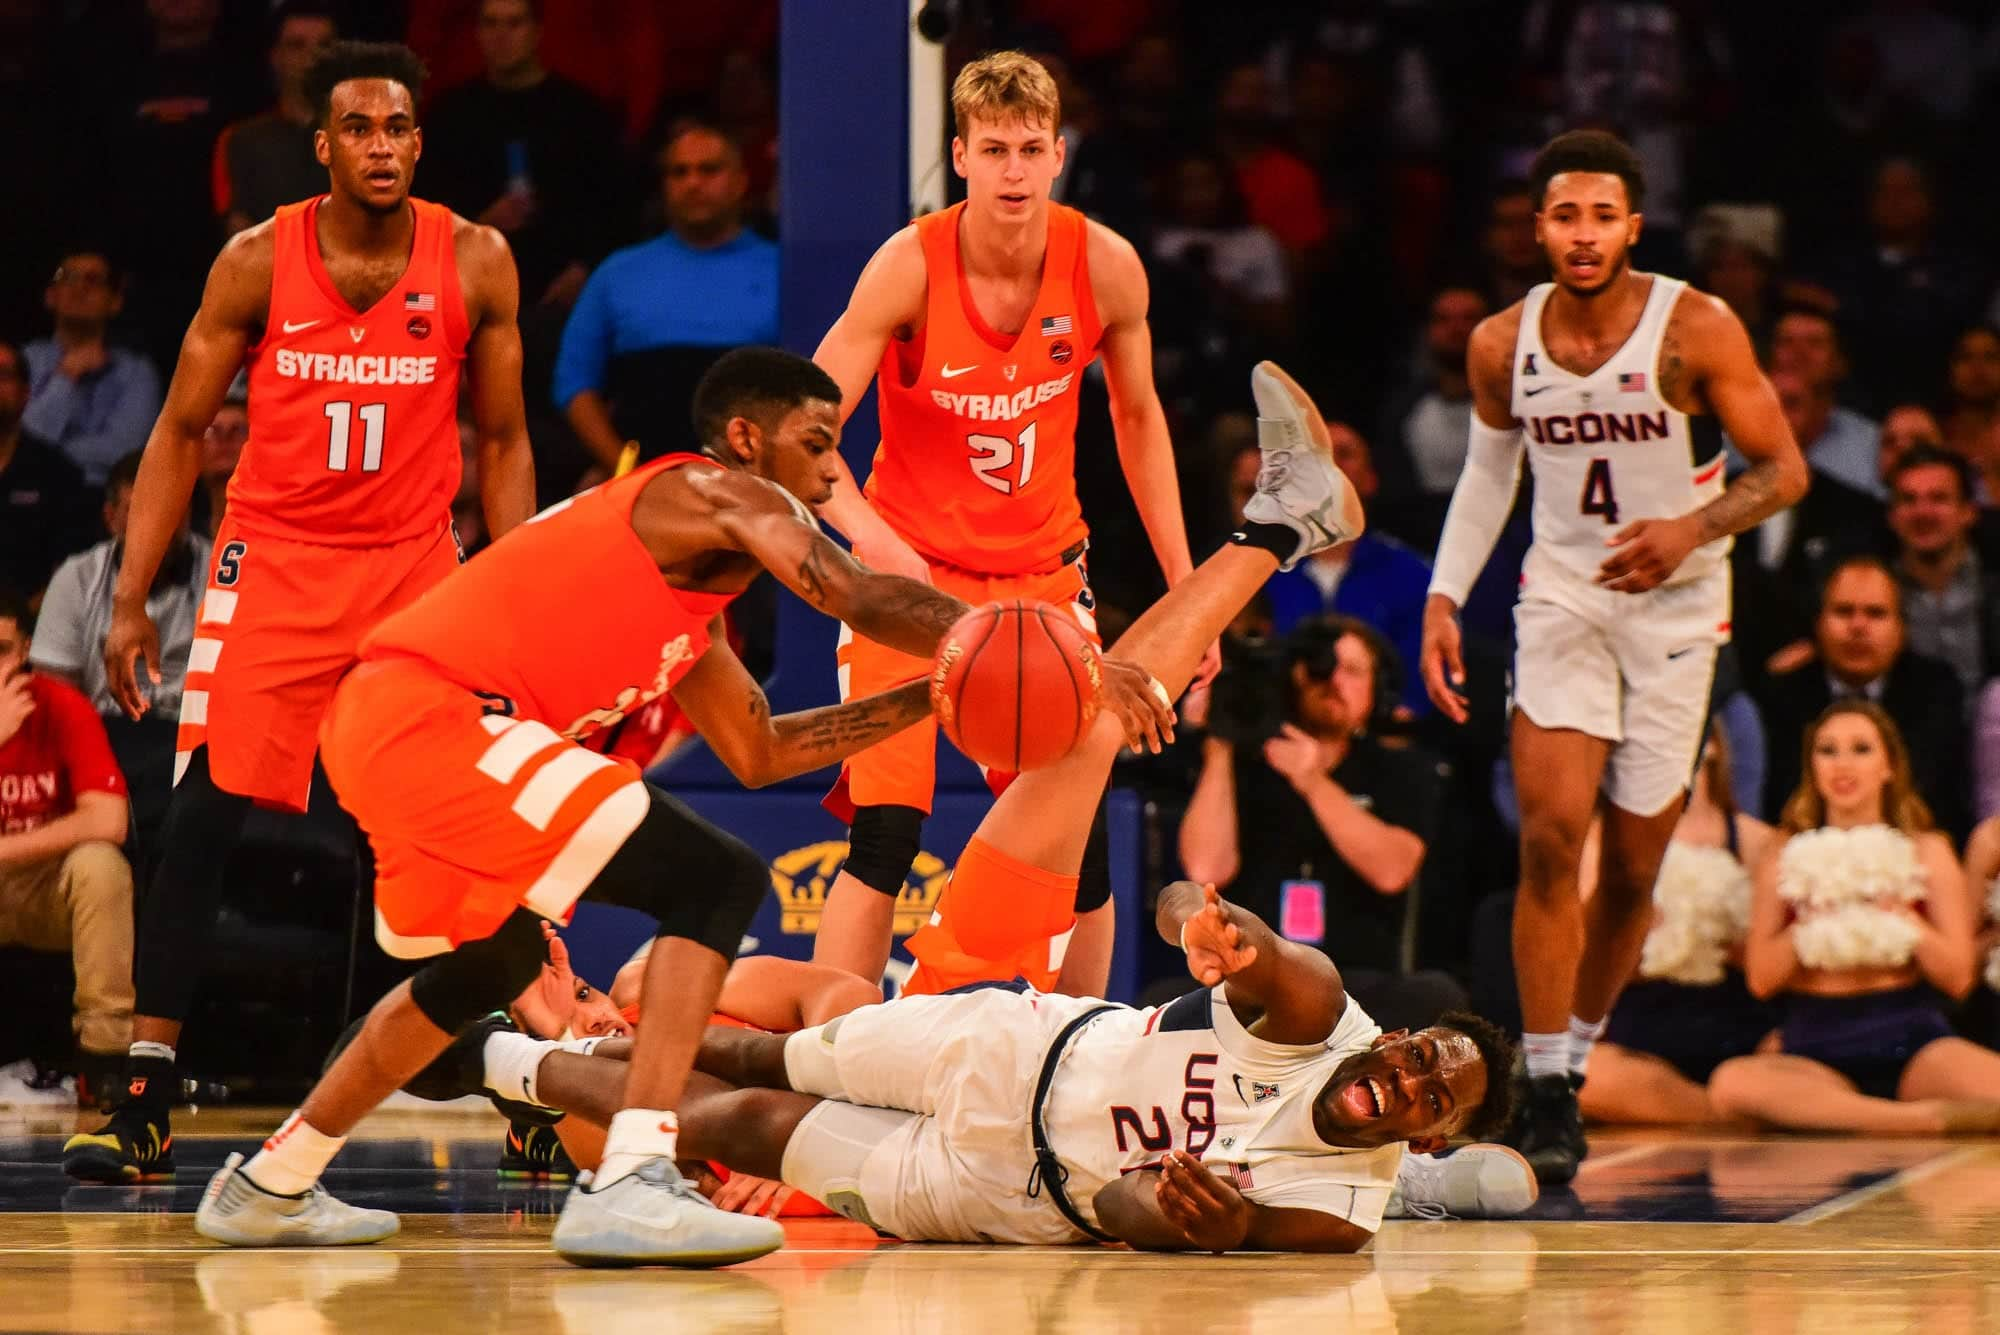 Syracuse vs. Connecticut - Dec. 5, 2017 - at Madison Square Garden, New York City